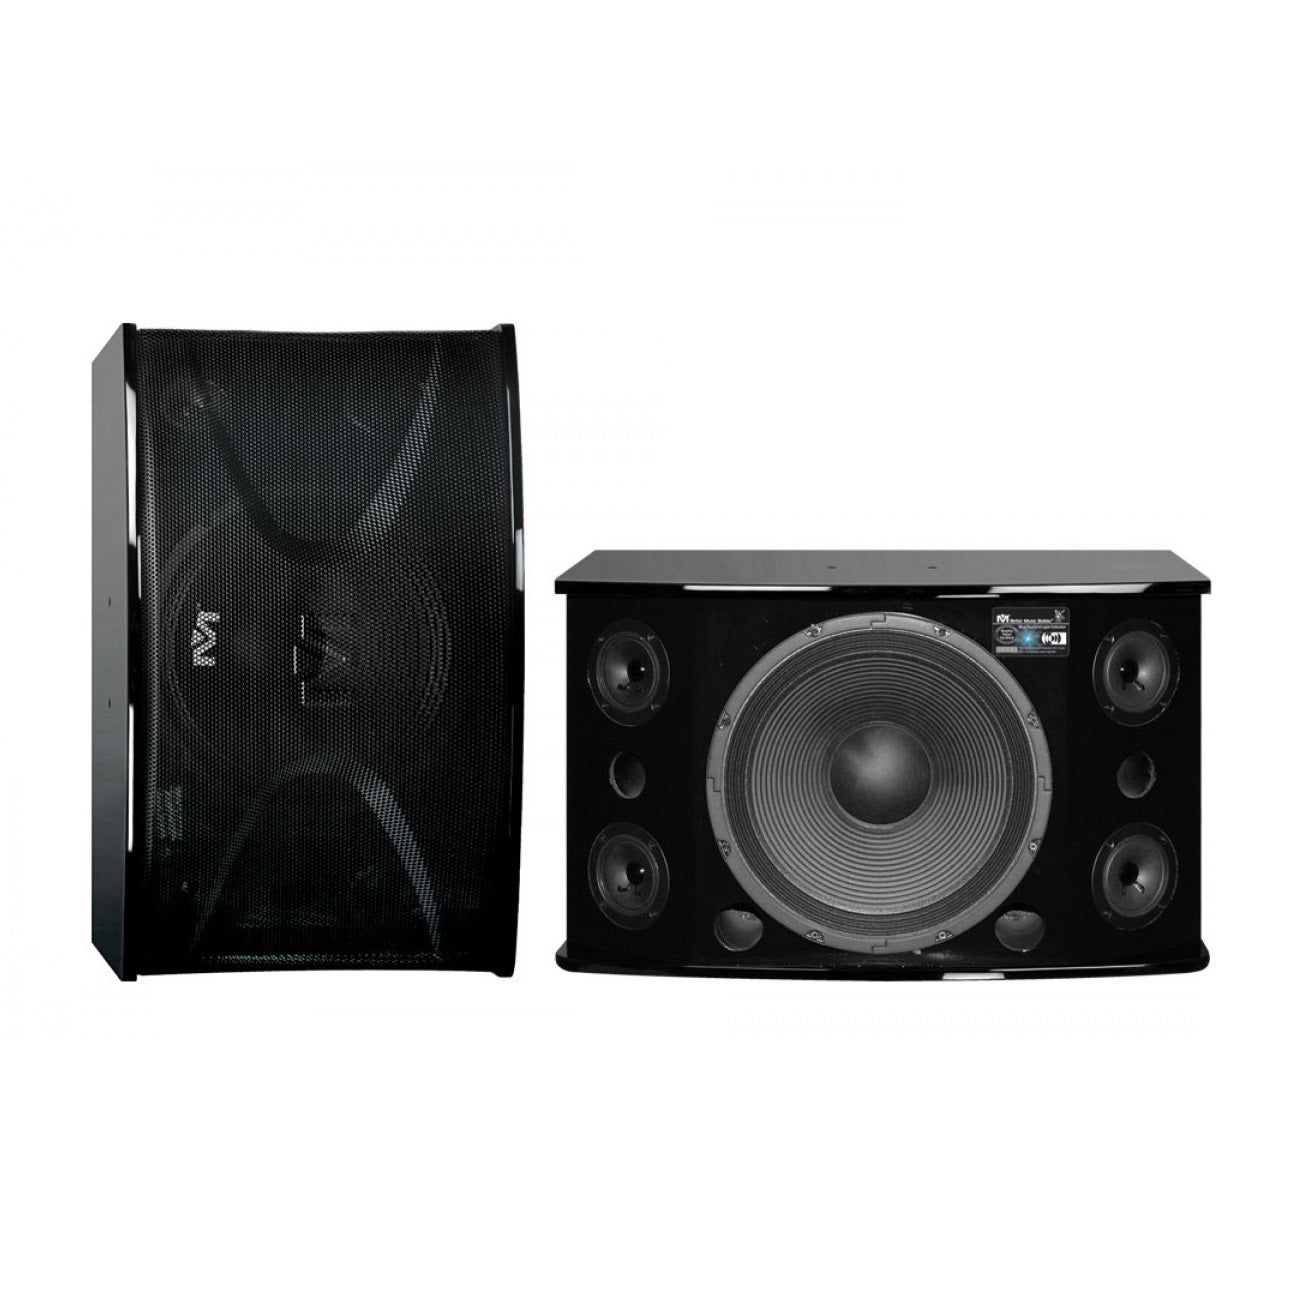 Better Music Builder CS-812 G3 Professional 600 Watts Karaoke Vocal Speakers (Black Gloss Finish)